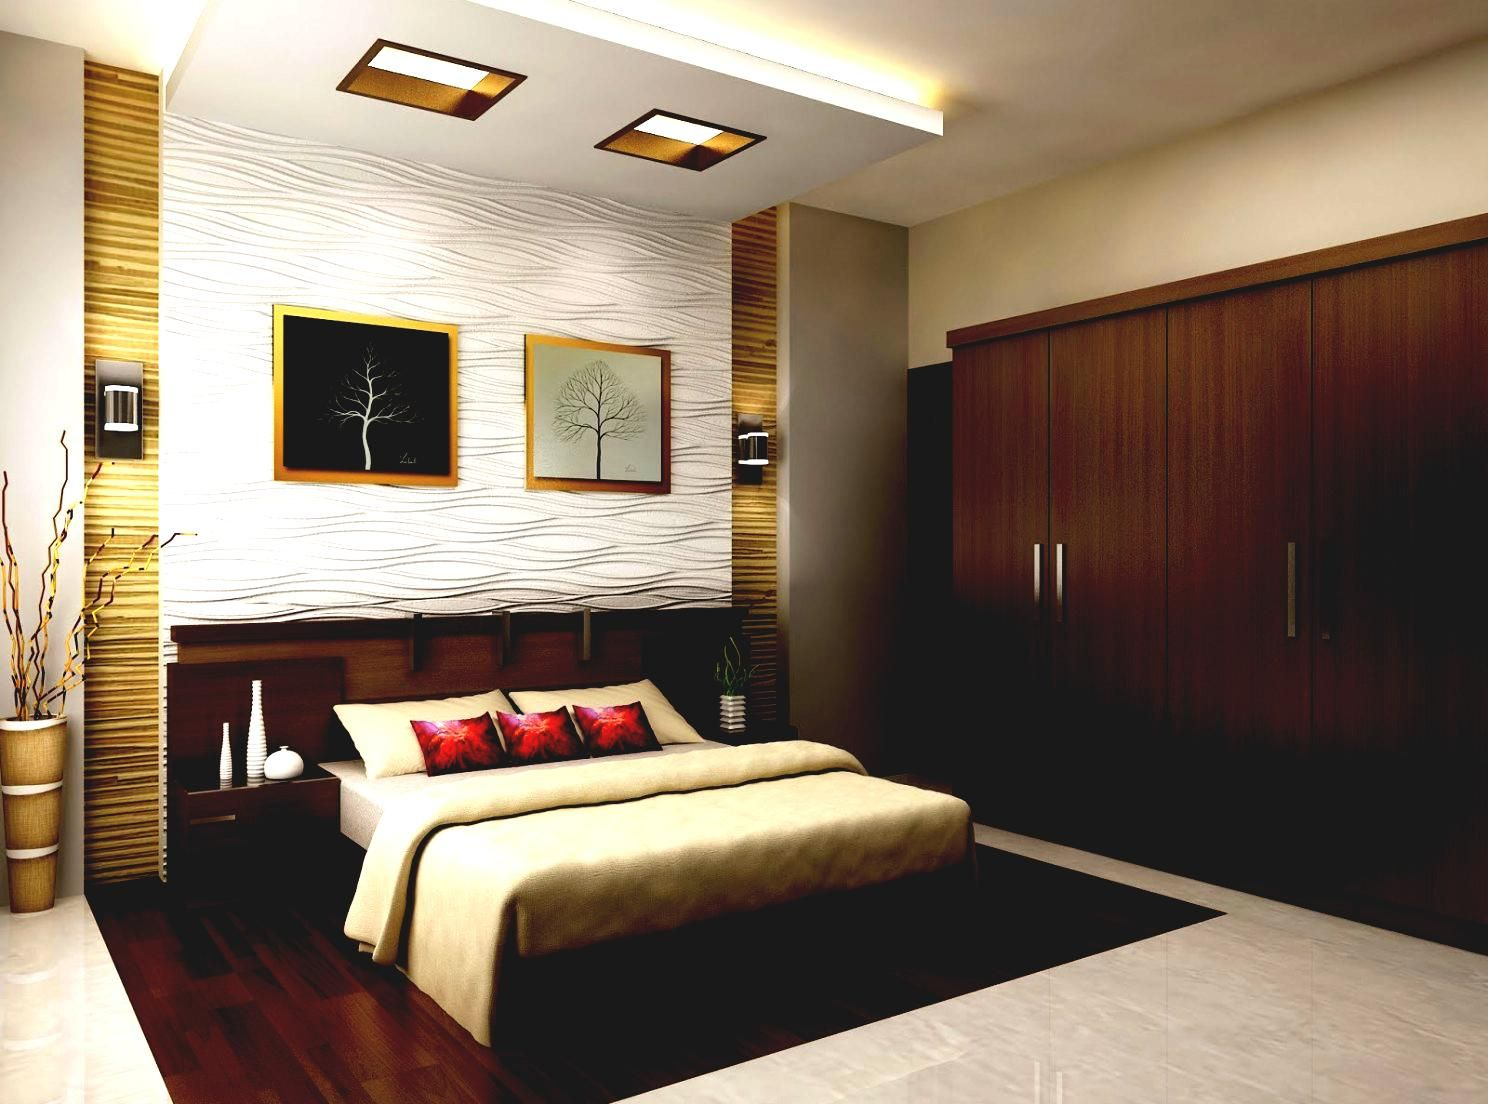 Excellent House Interior Design Ideas For Small House With Carpet Floor And Decorative Plant F Master Bedroom